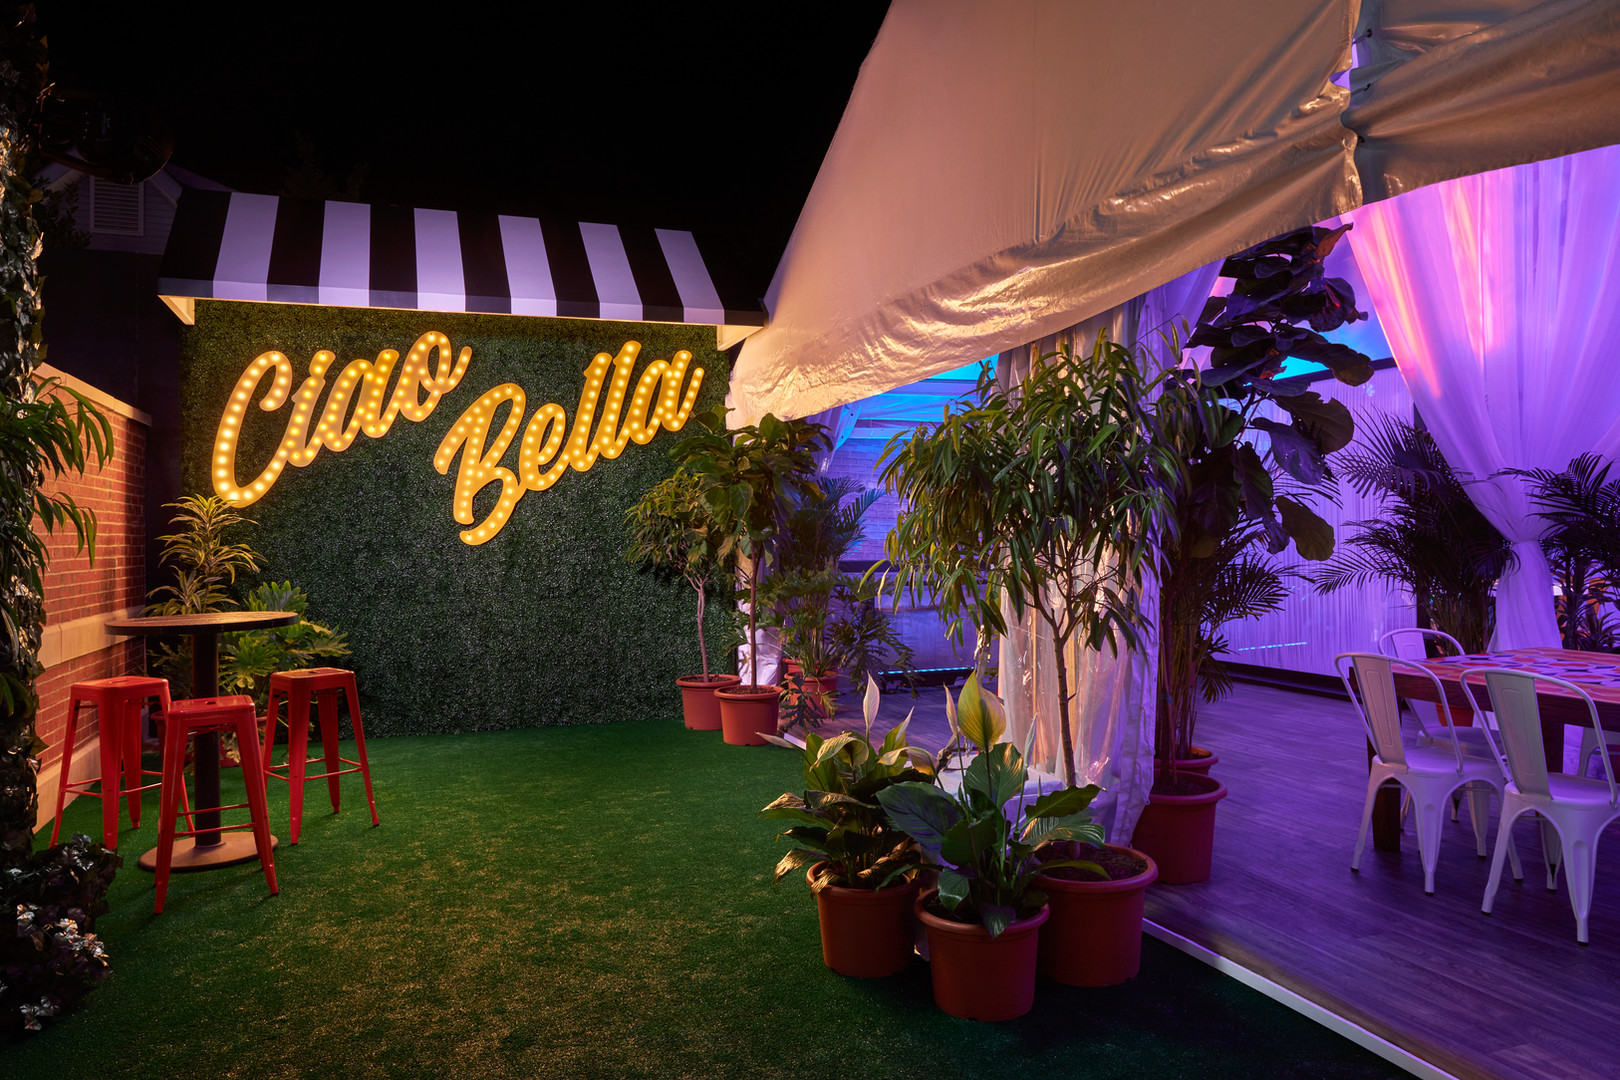 Snap a Photo at Our Ciao Bella Photo Wall!